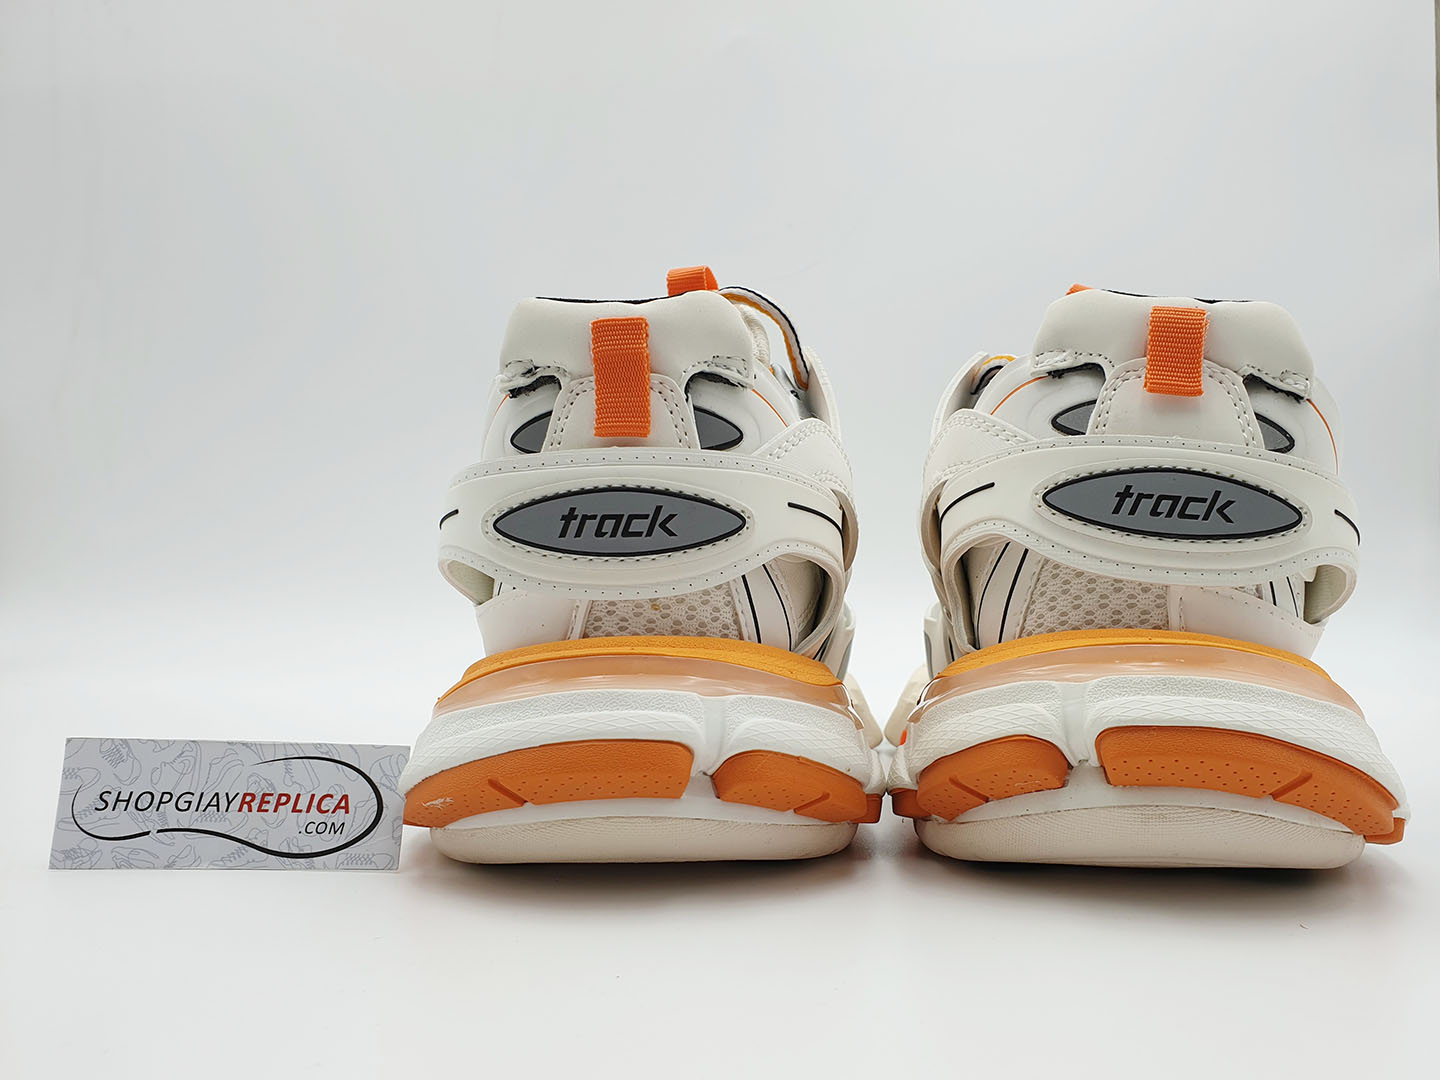 giày balenciaga track 3.0 orange replica